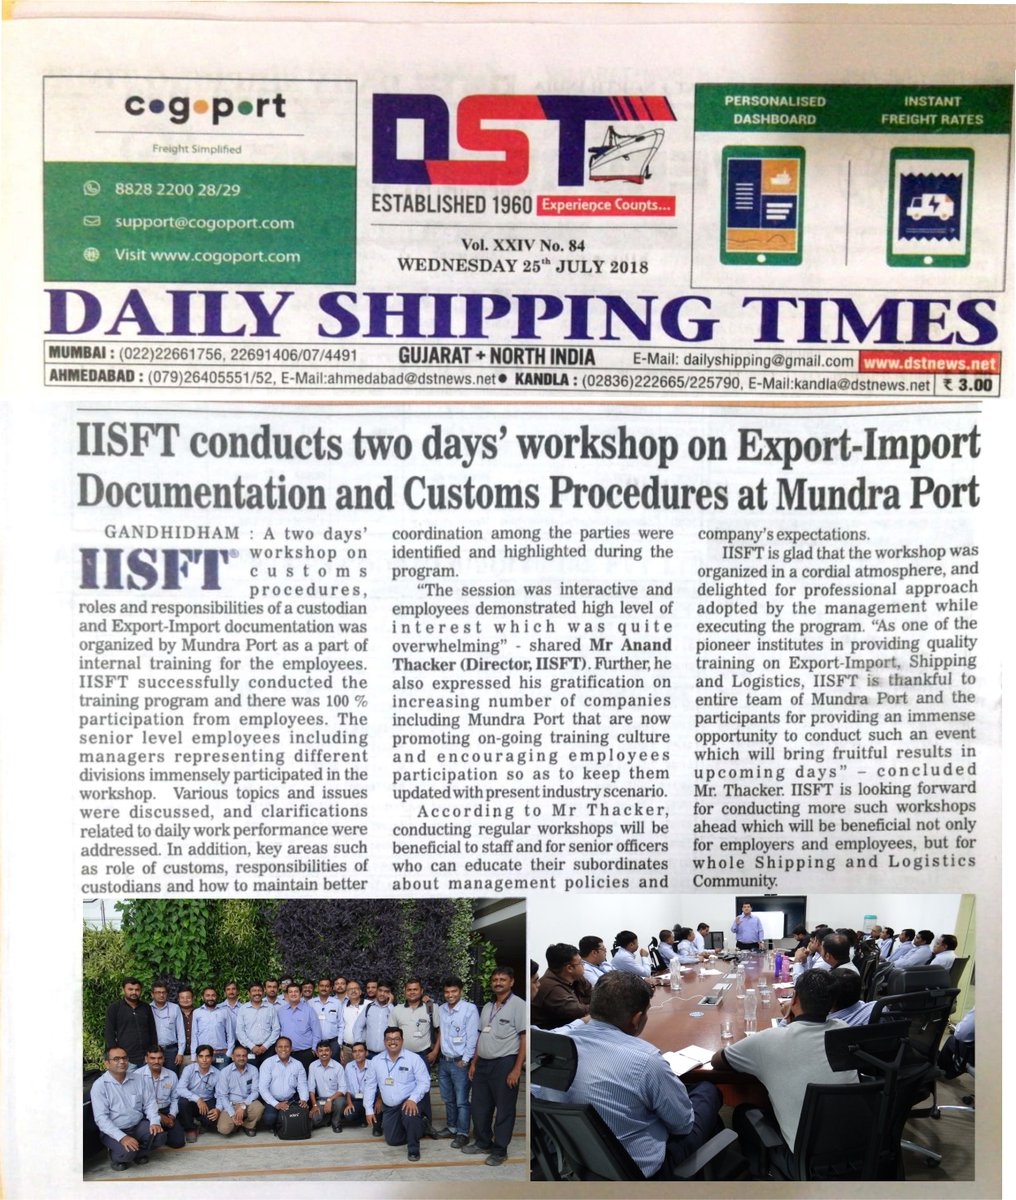 """News article on #DailyShippingTimes highlighting #IISFT conducted """"Two days' workshop on #ExportImport Documentation and #Customs Procedures for #MundraPort employees. #GovernmentApprovedShippingCourses #LogisticsSkillCouncil #LSC #LSCShippingCourses #ShippingCoursesLSC https://t.co/SlNAFBcRTP"""